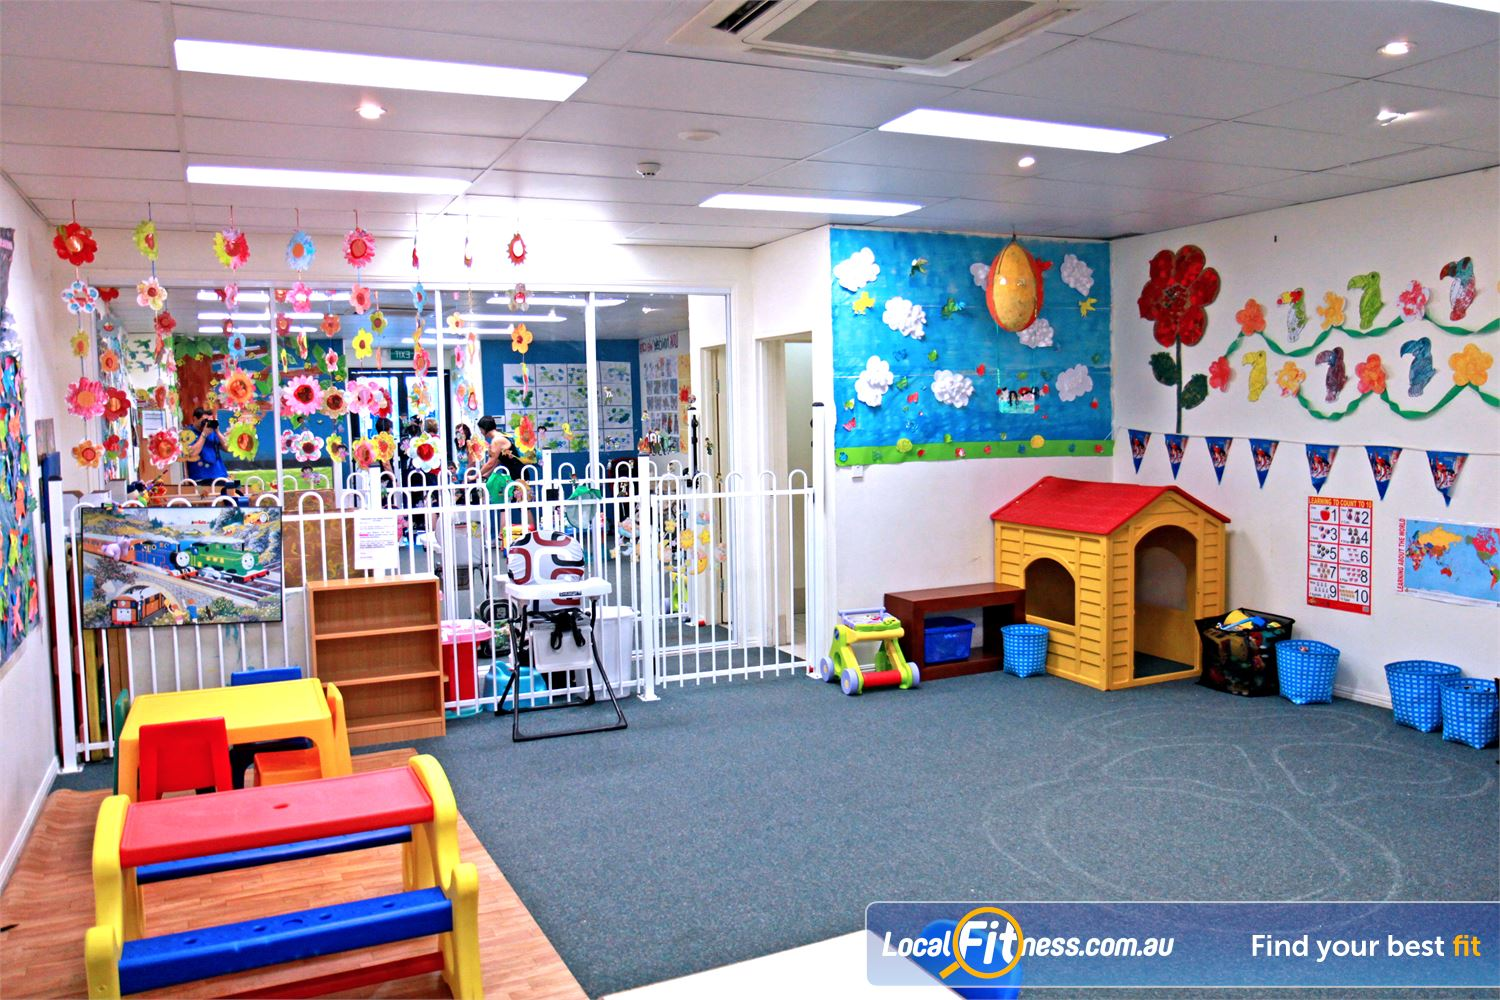 Fernwood Fitness Petrie Conveniently located on-site child care at the Fernwood Petrie gym.